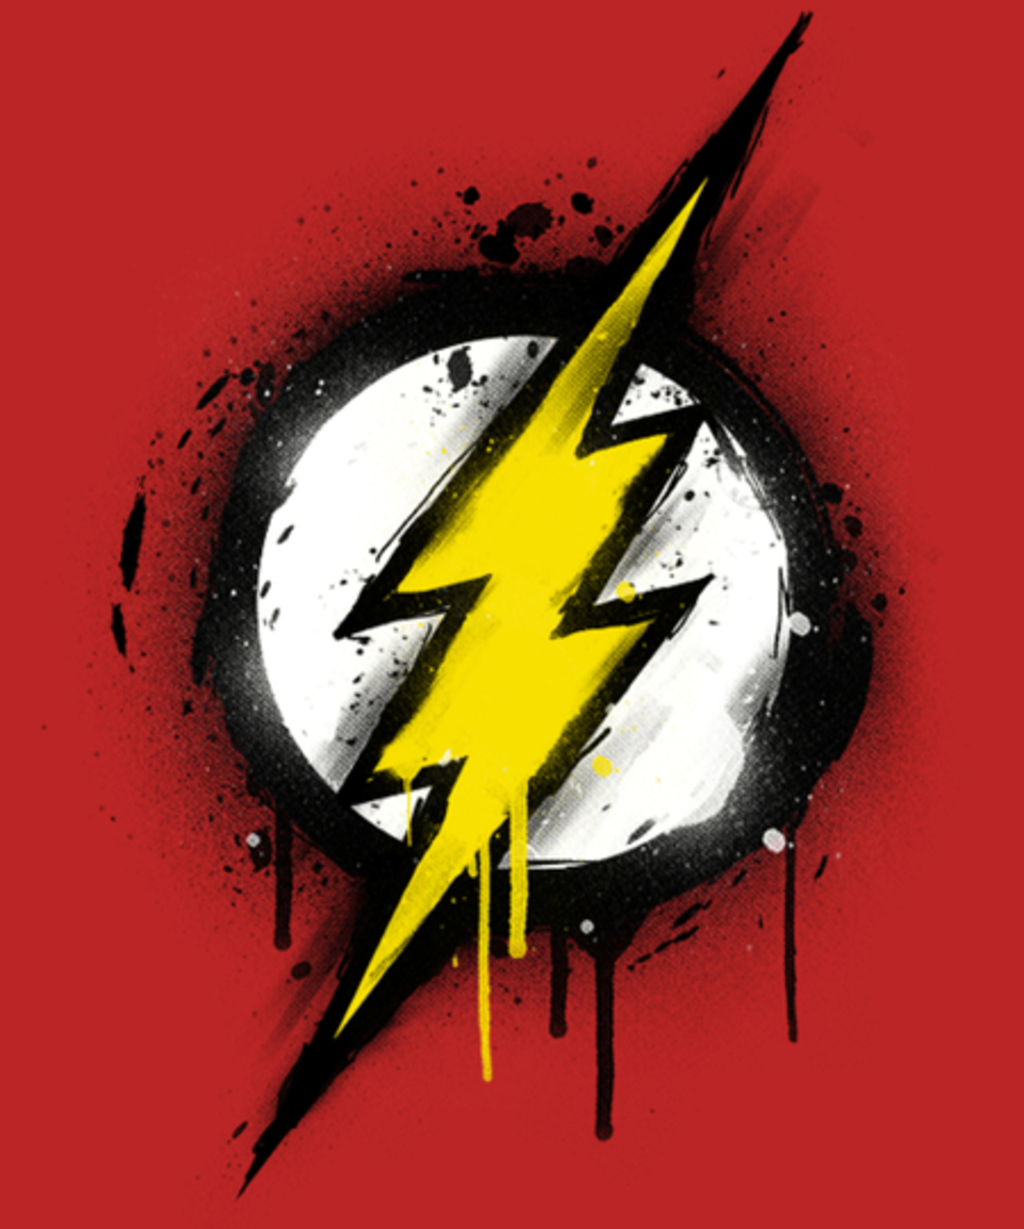 Qwertee: Flash graff